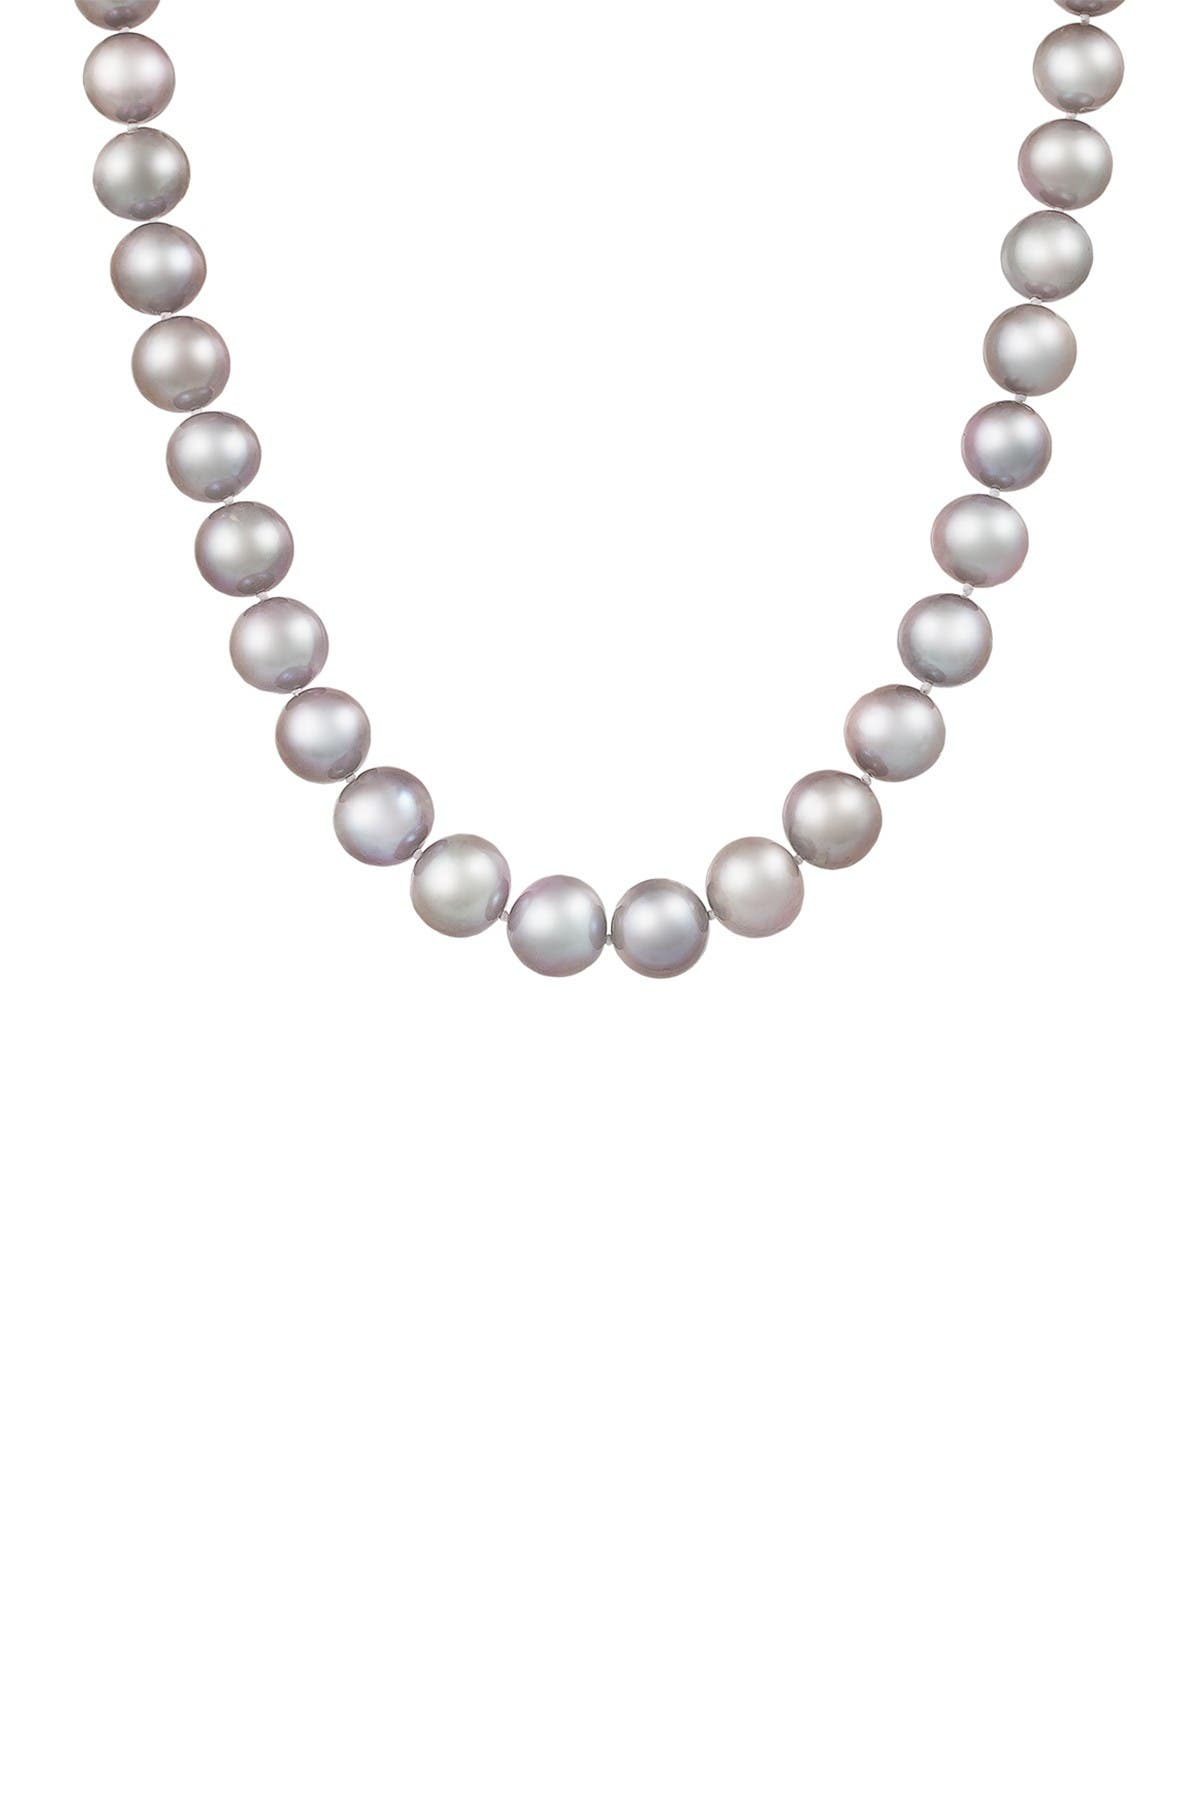 Image of Splendid Pearls Gray Pearl Necklace